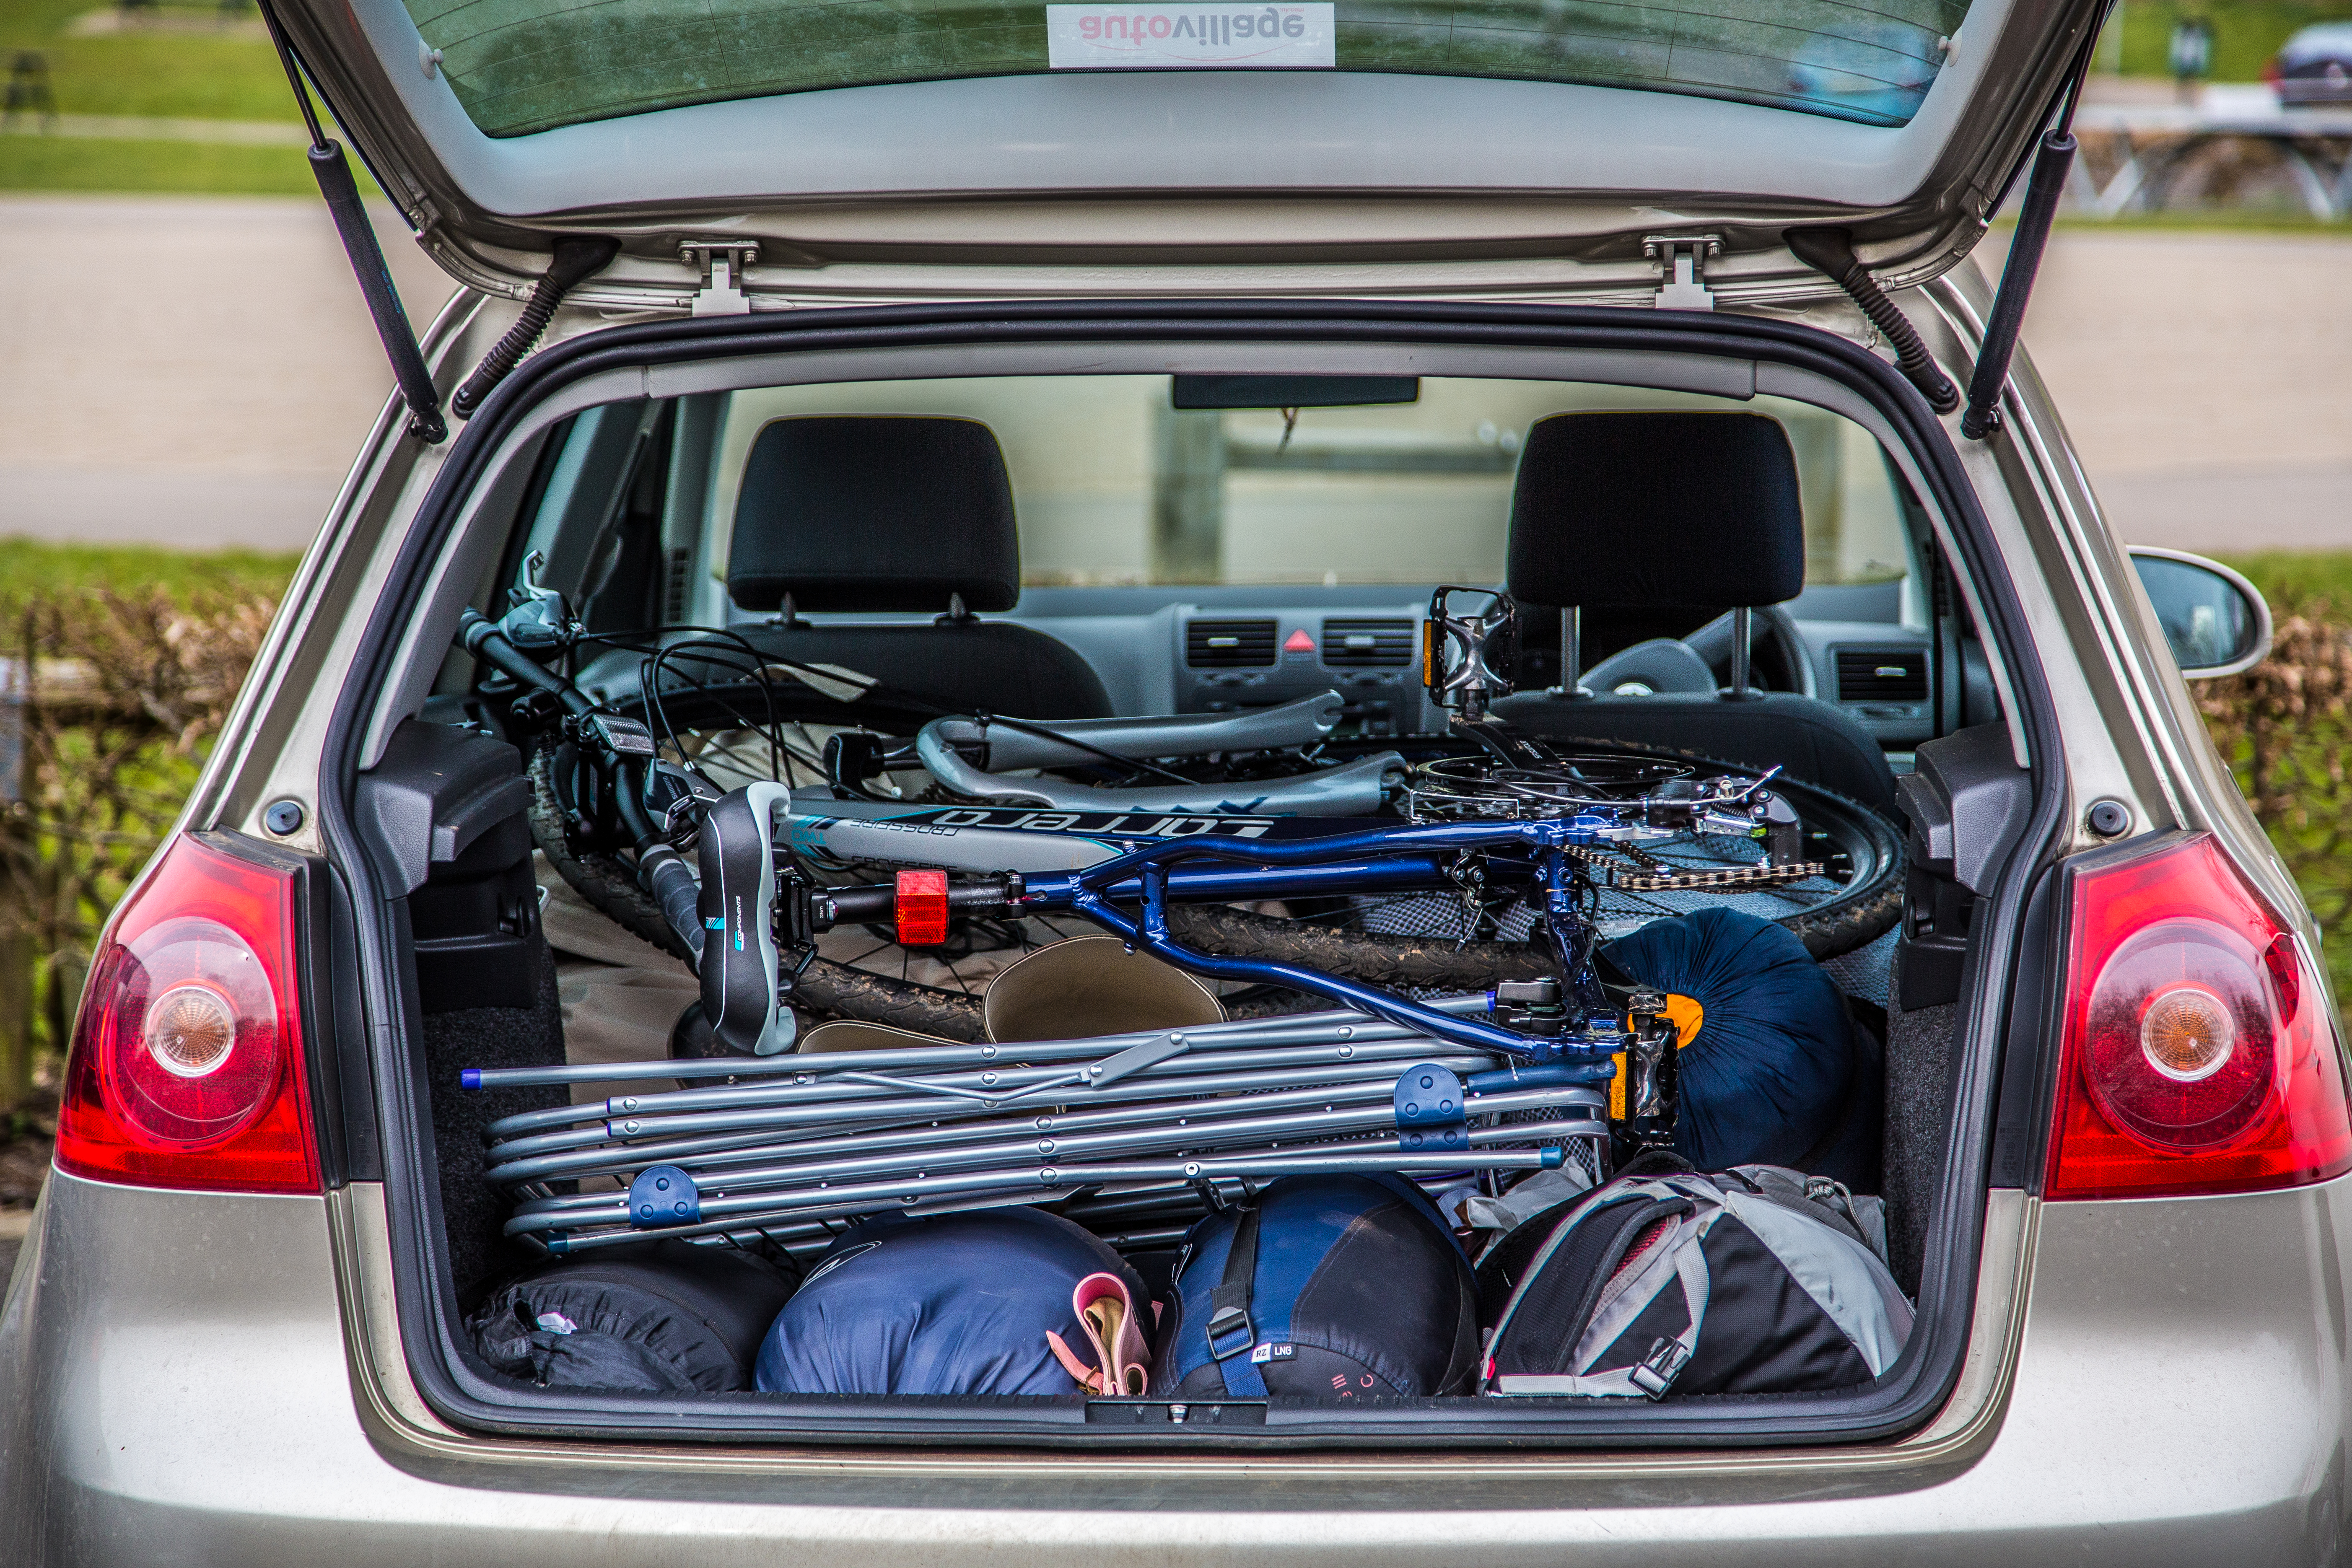 packing your car